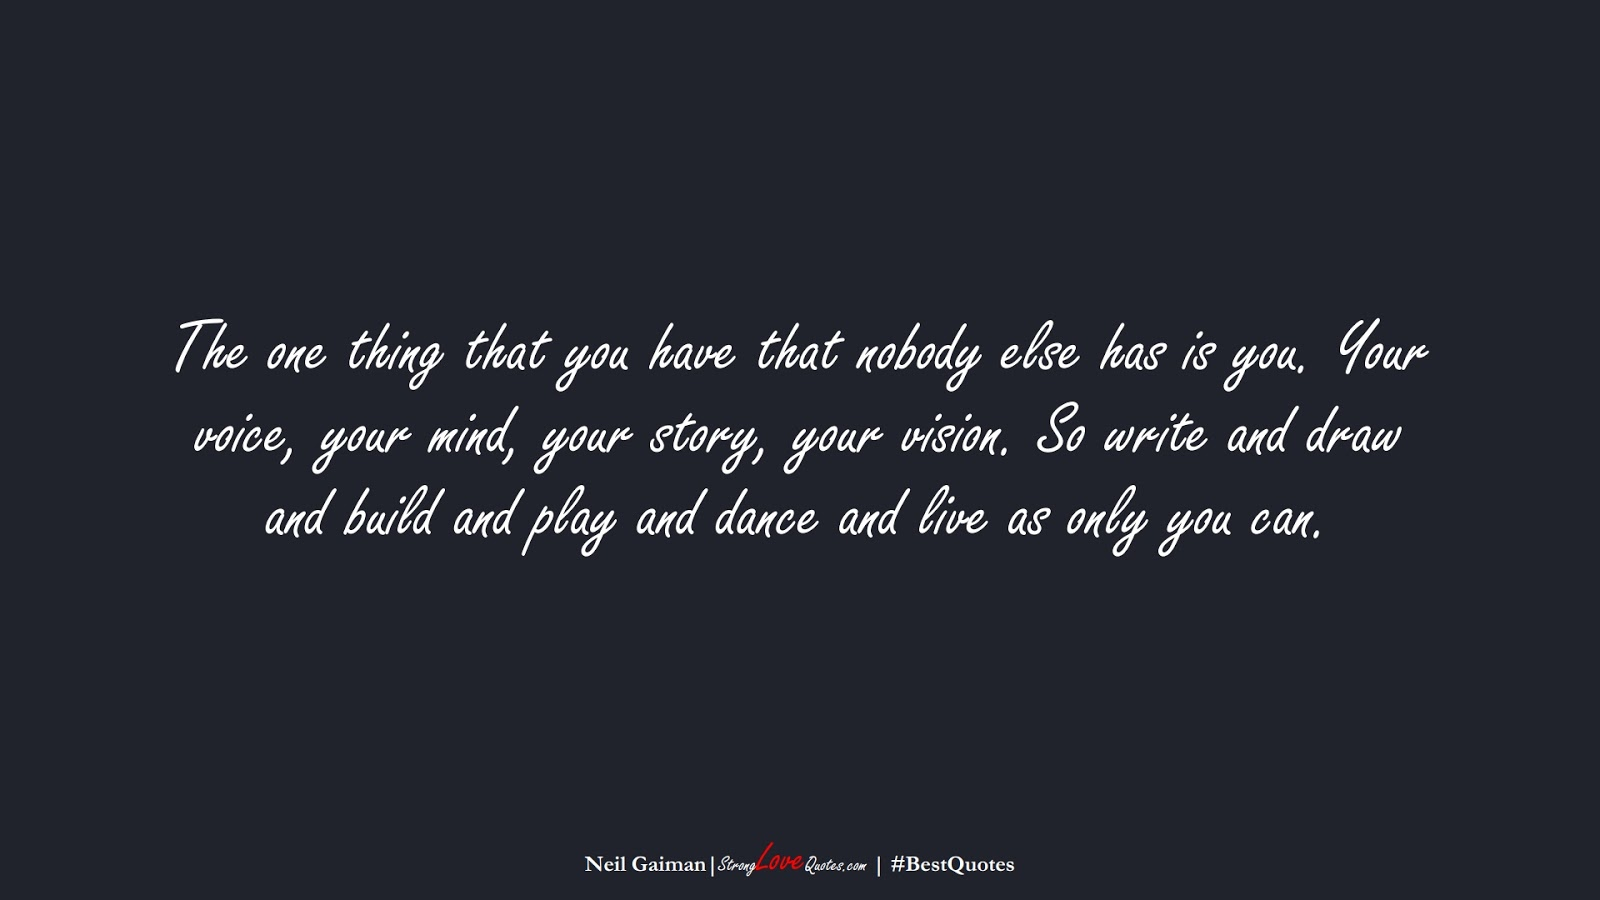 The one thing that you have that nobody else has is you. Your voice, your mind, your story, your vision. So write and draw and build and play and dance and live as only you can. (Neil Gaiman);  #BestQuotes